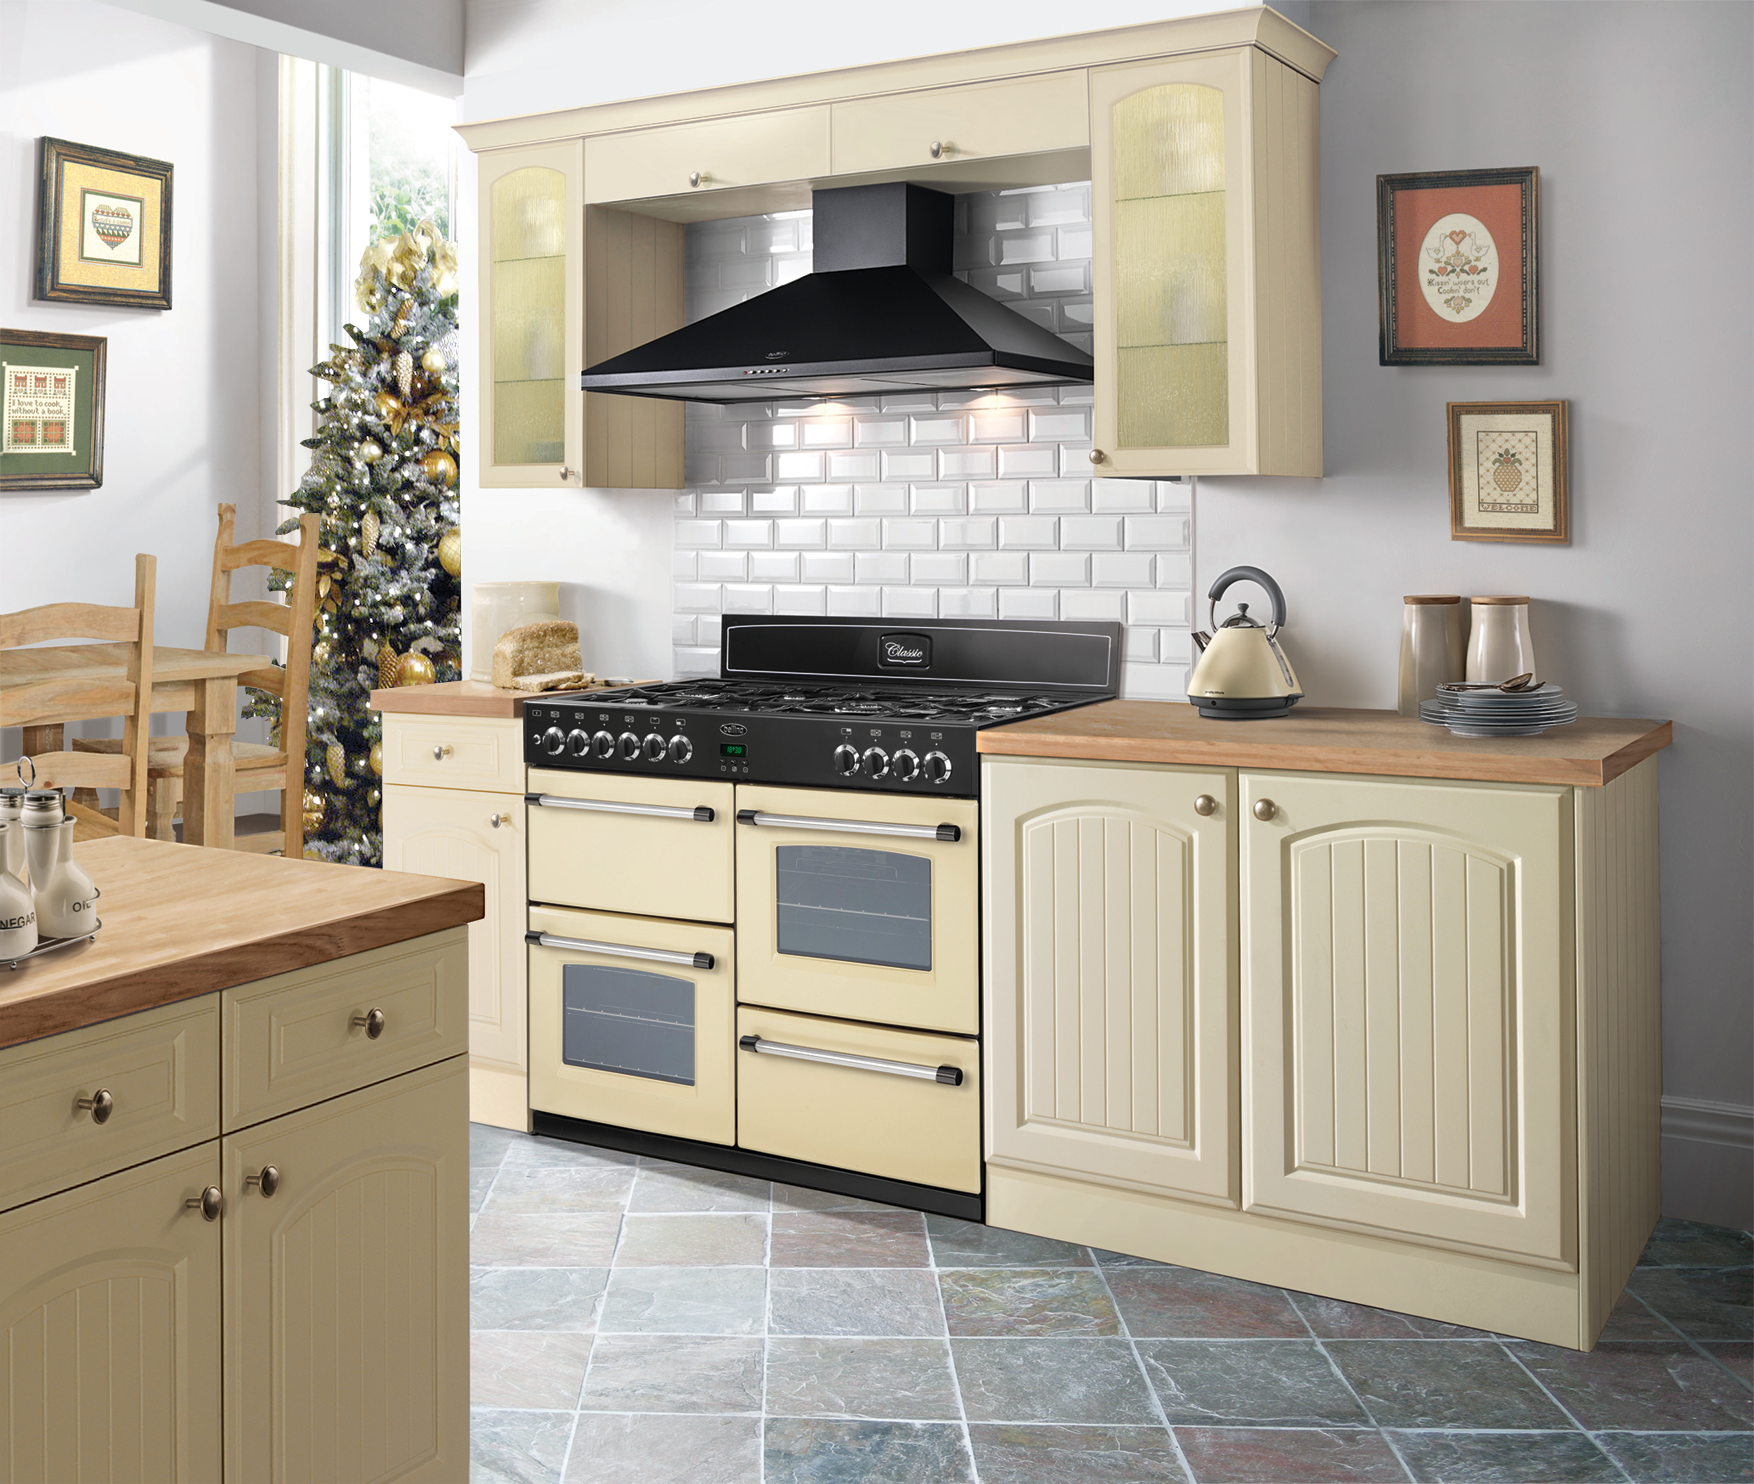 Belling Classic Range Cooker In An Inspirational Cream Kitchen With Wooden  Worktops And Stone Tiled Floor.